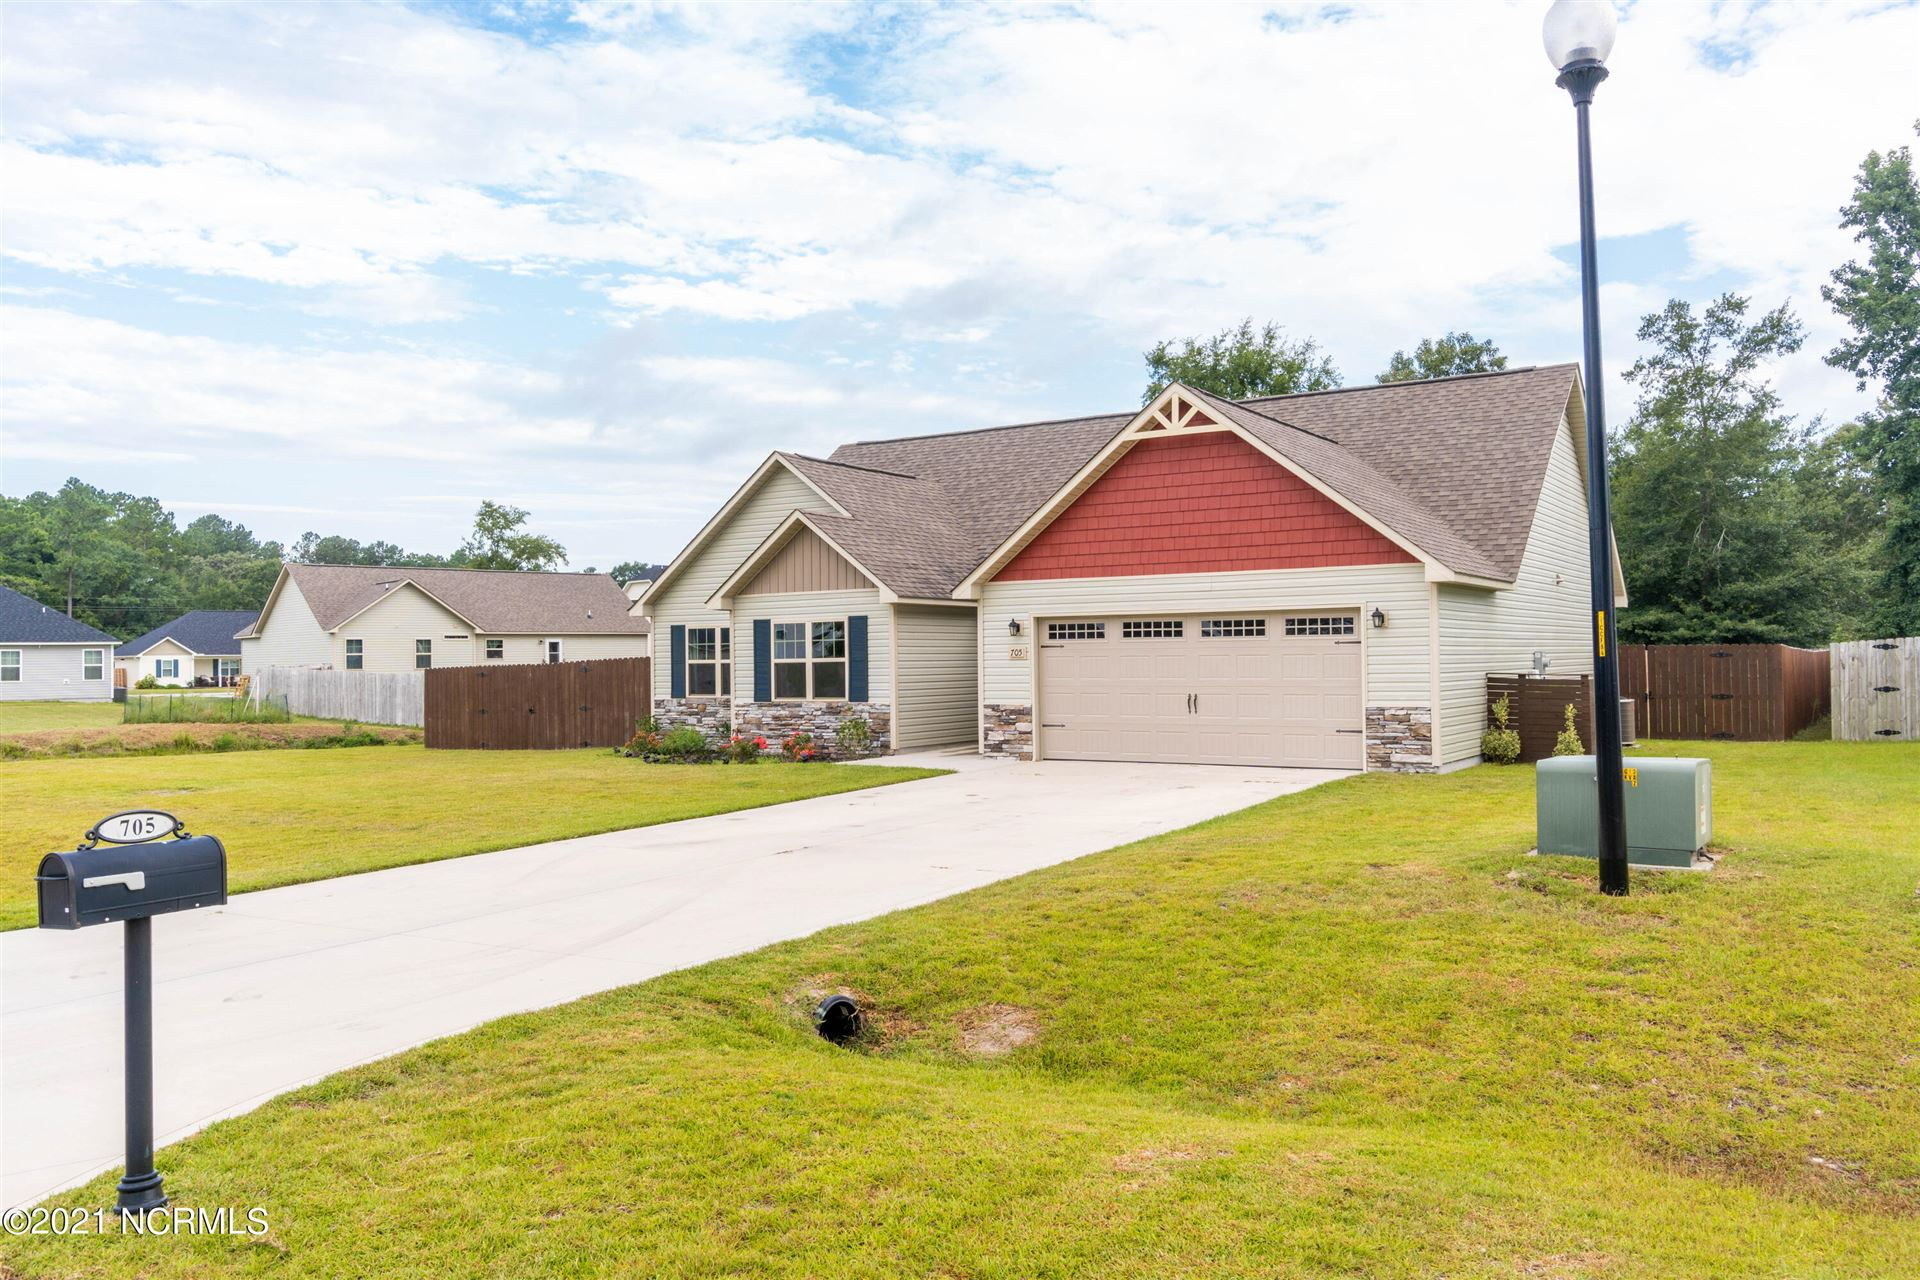 Photo of 705 Addor Drive, Richlands, NC 28574 (MLS # 100289052)